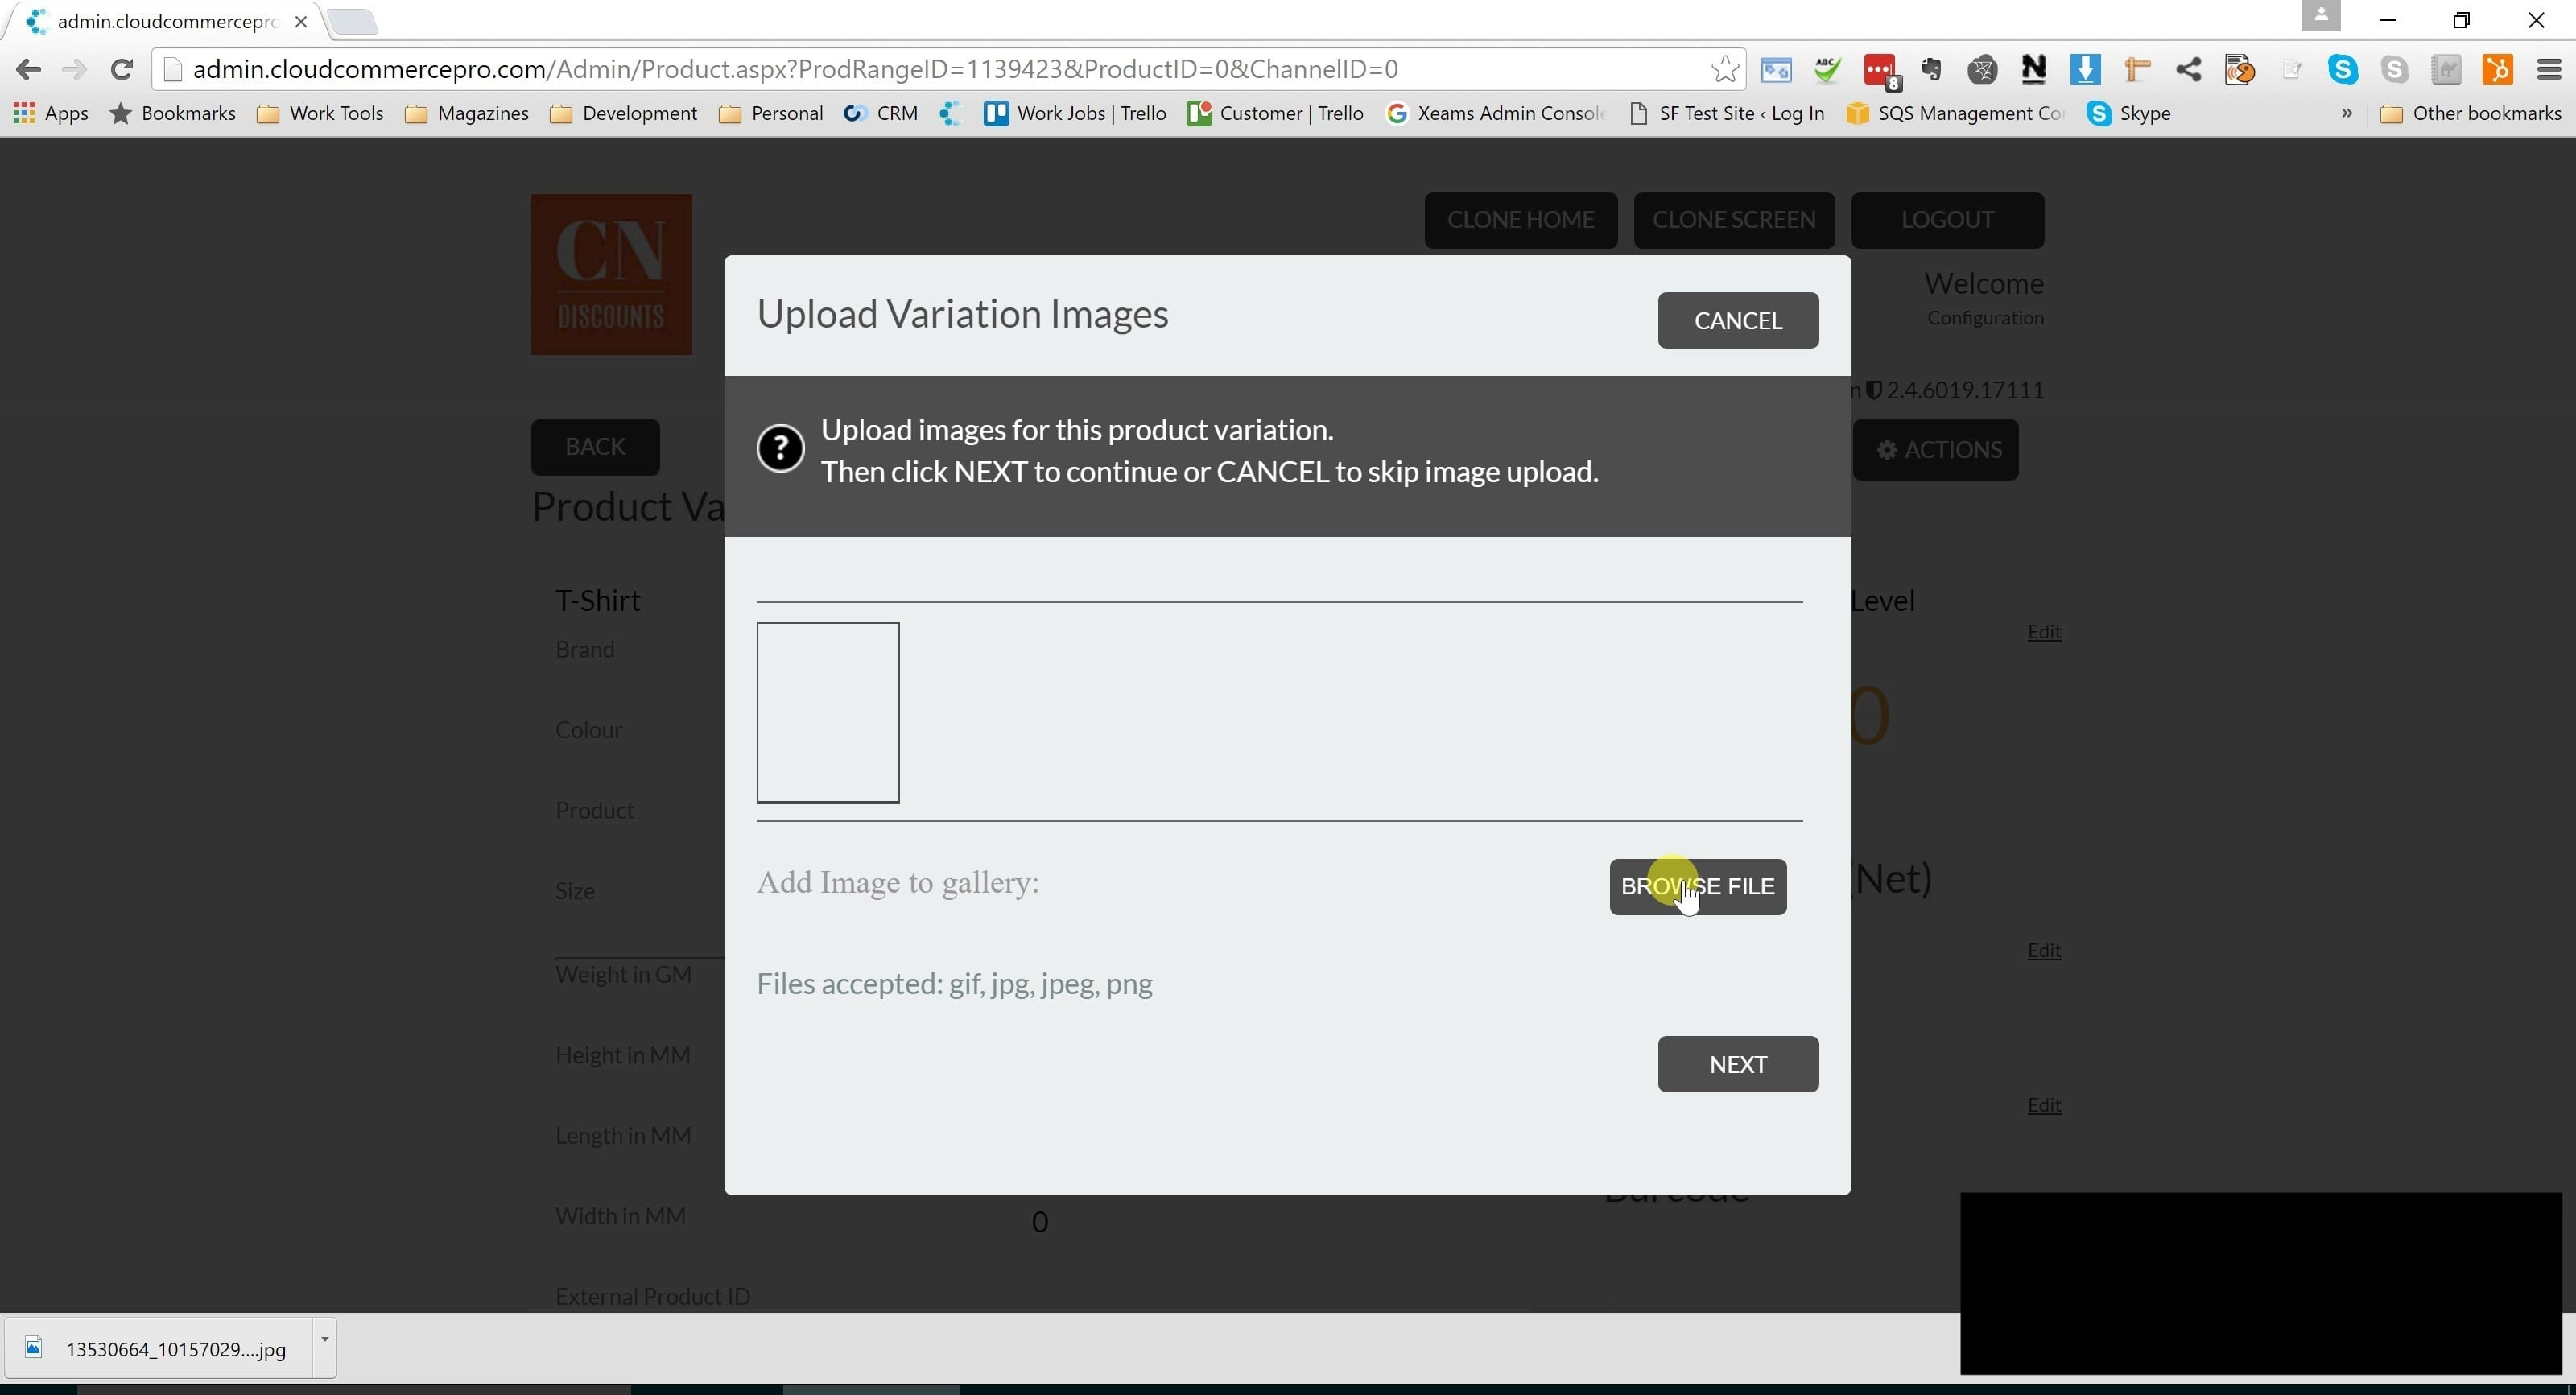 11. Add Images